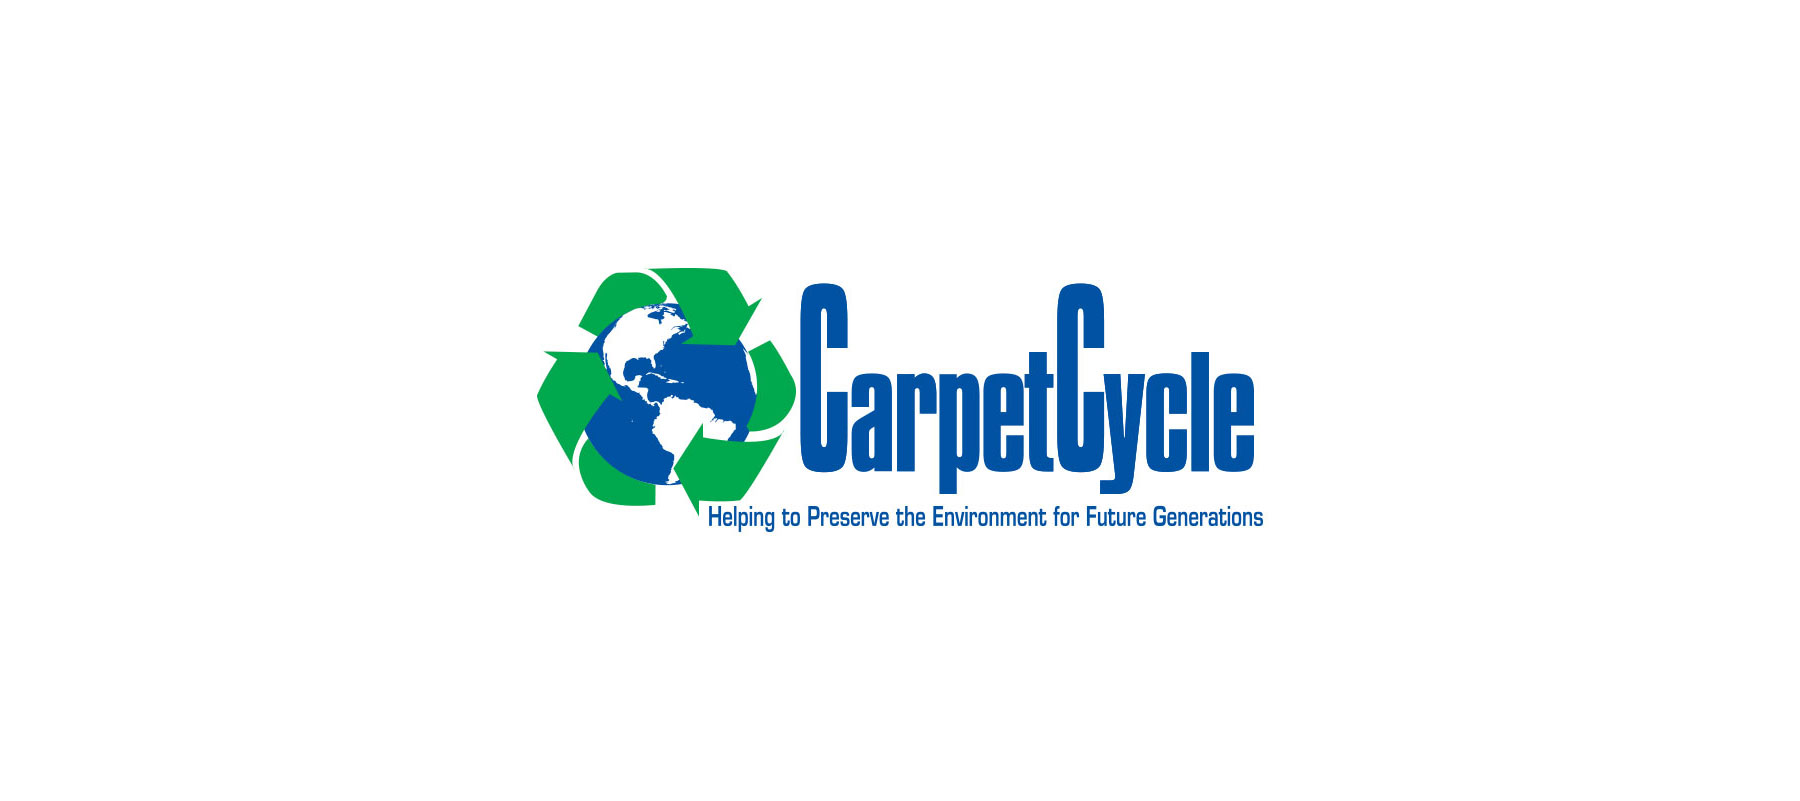 Tri-State LED Provides LED Lighting Technologies for CarpetCycle, LLC